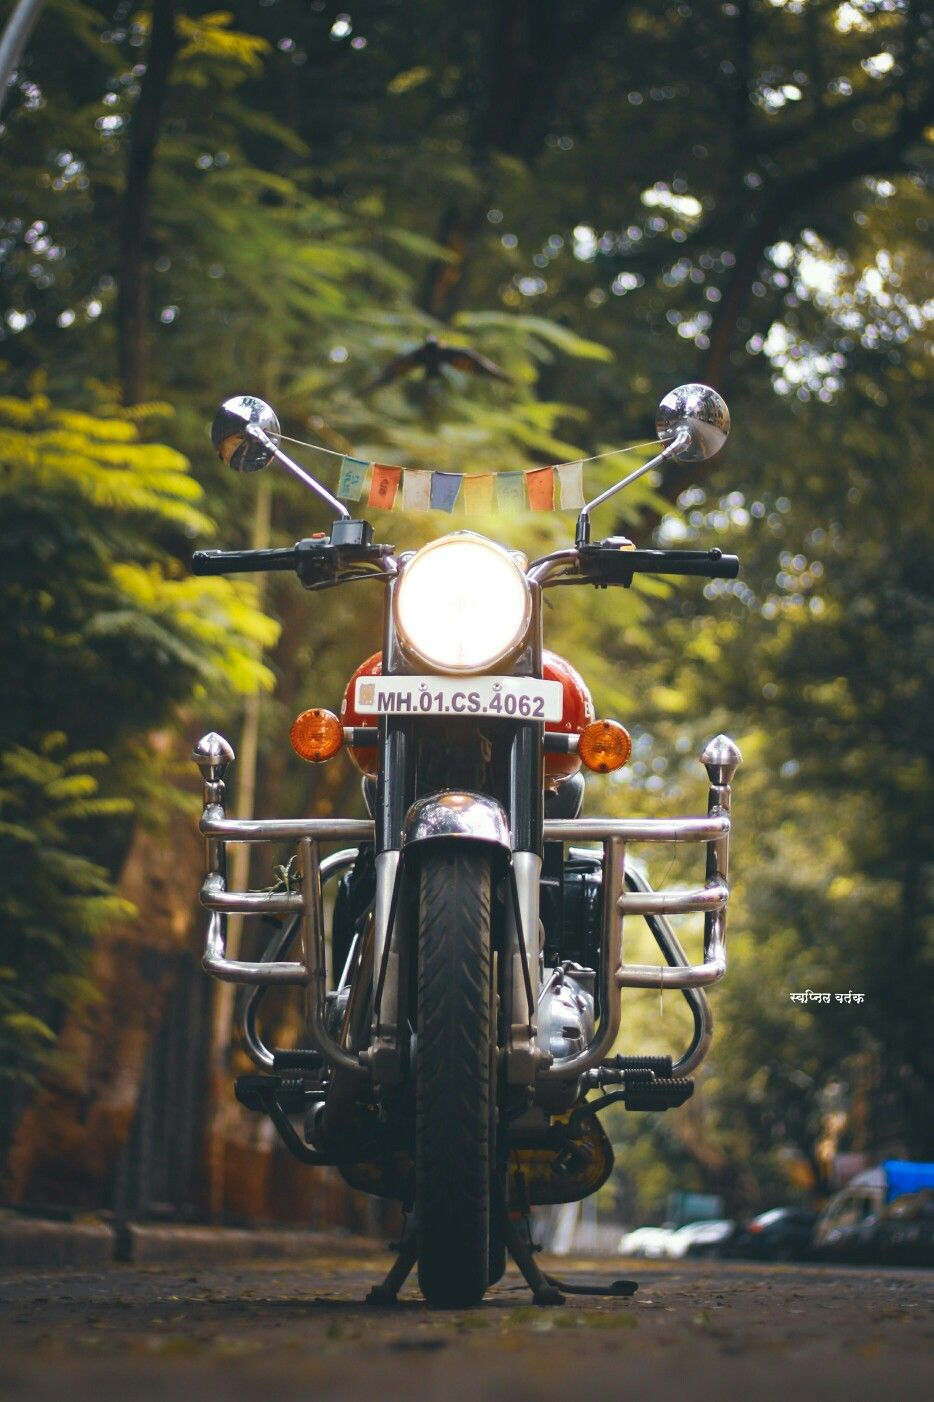 Royal Enfield Classic 350 Swapnil Vartak Photography Enfield Classic Bullet Bike Royal Enfield Royal Enfield Hd Wallpapers